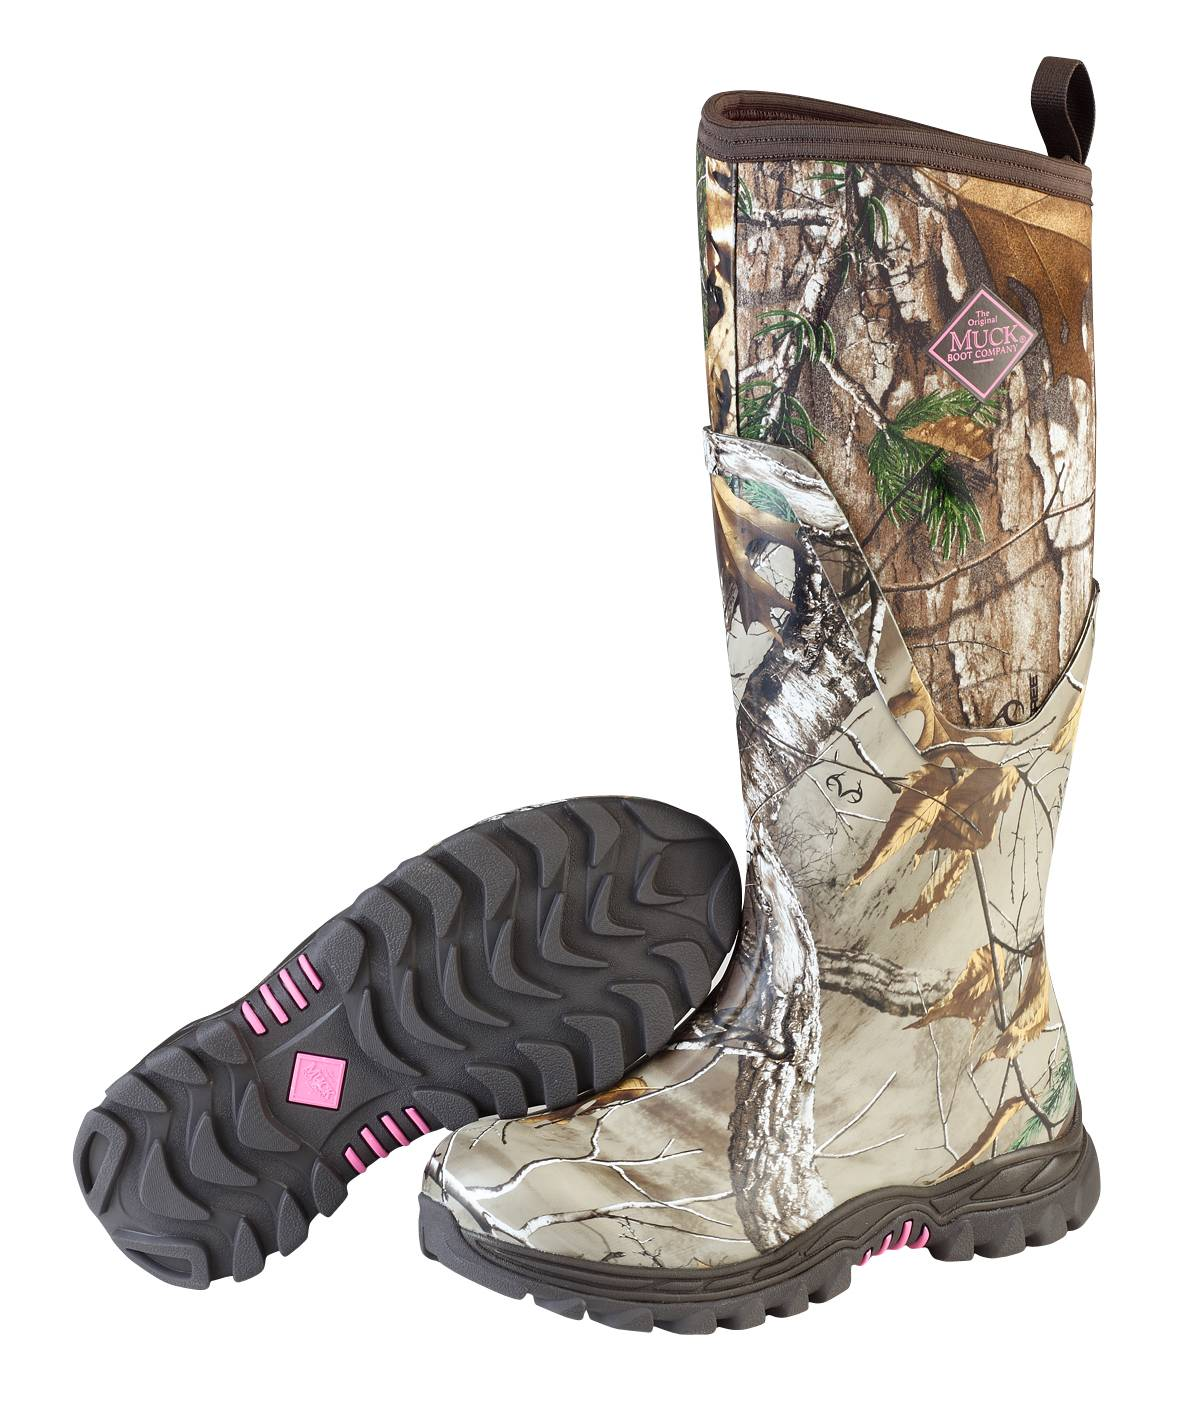 Muck Boots Arctic Hunter Tall Boots - Ladies Bark Realtree Xtra Pink